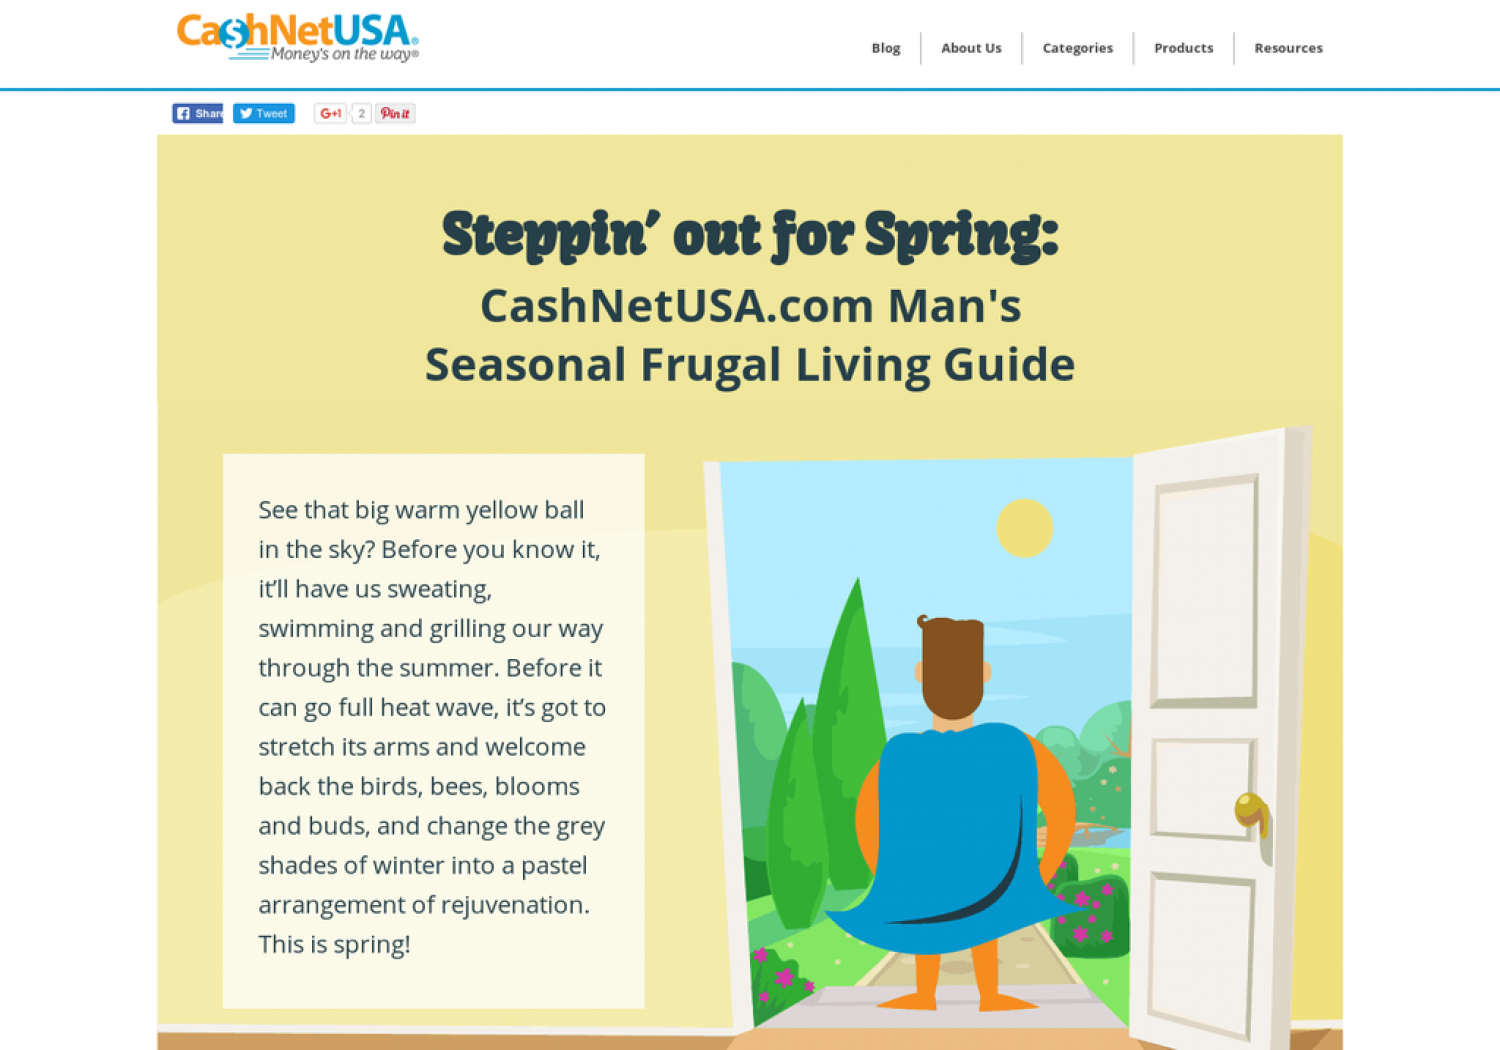 The frugal living guide array cashnetusa com man u0027s seasonal frugal living guide spring visual ly rh visual ly fandeluxe Choice Image